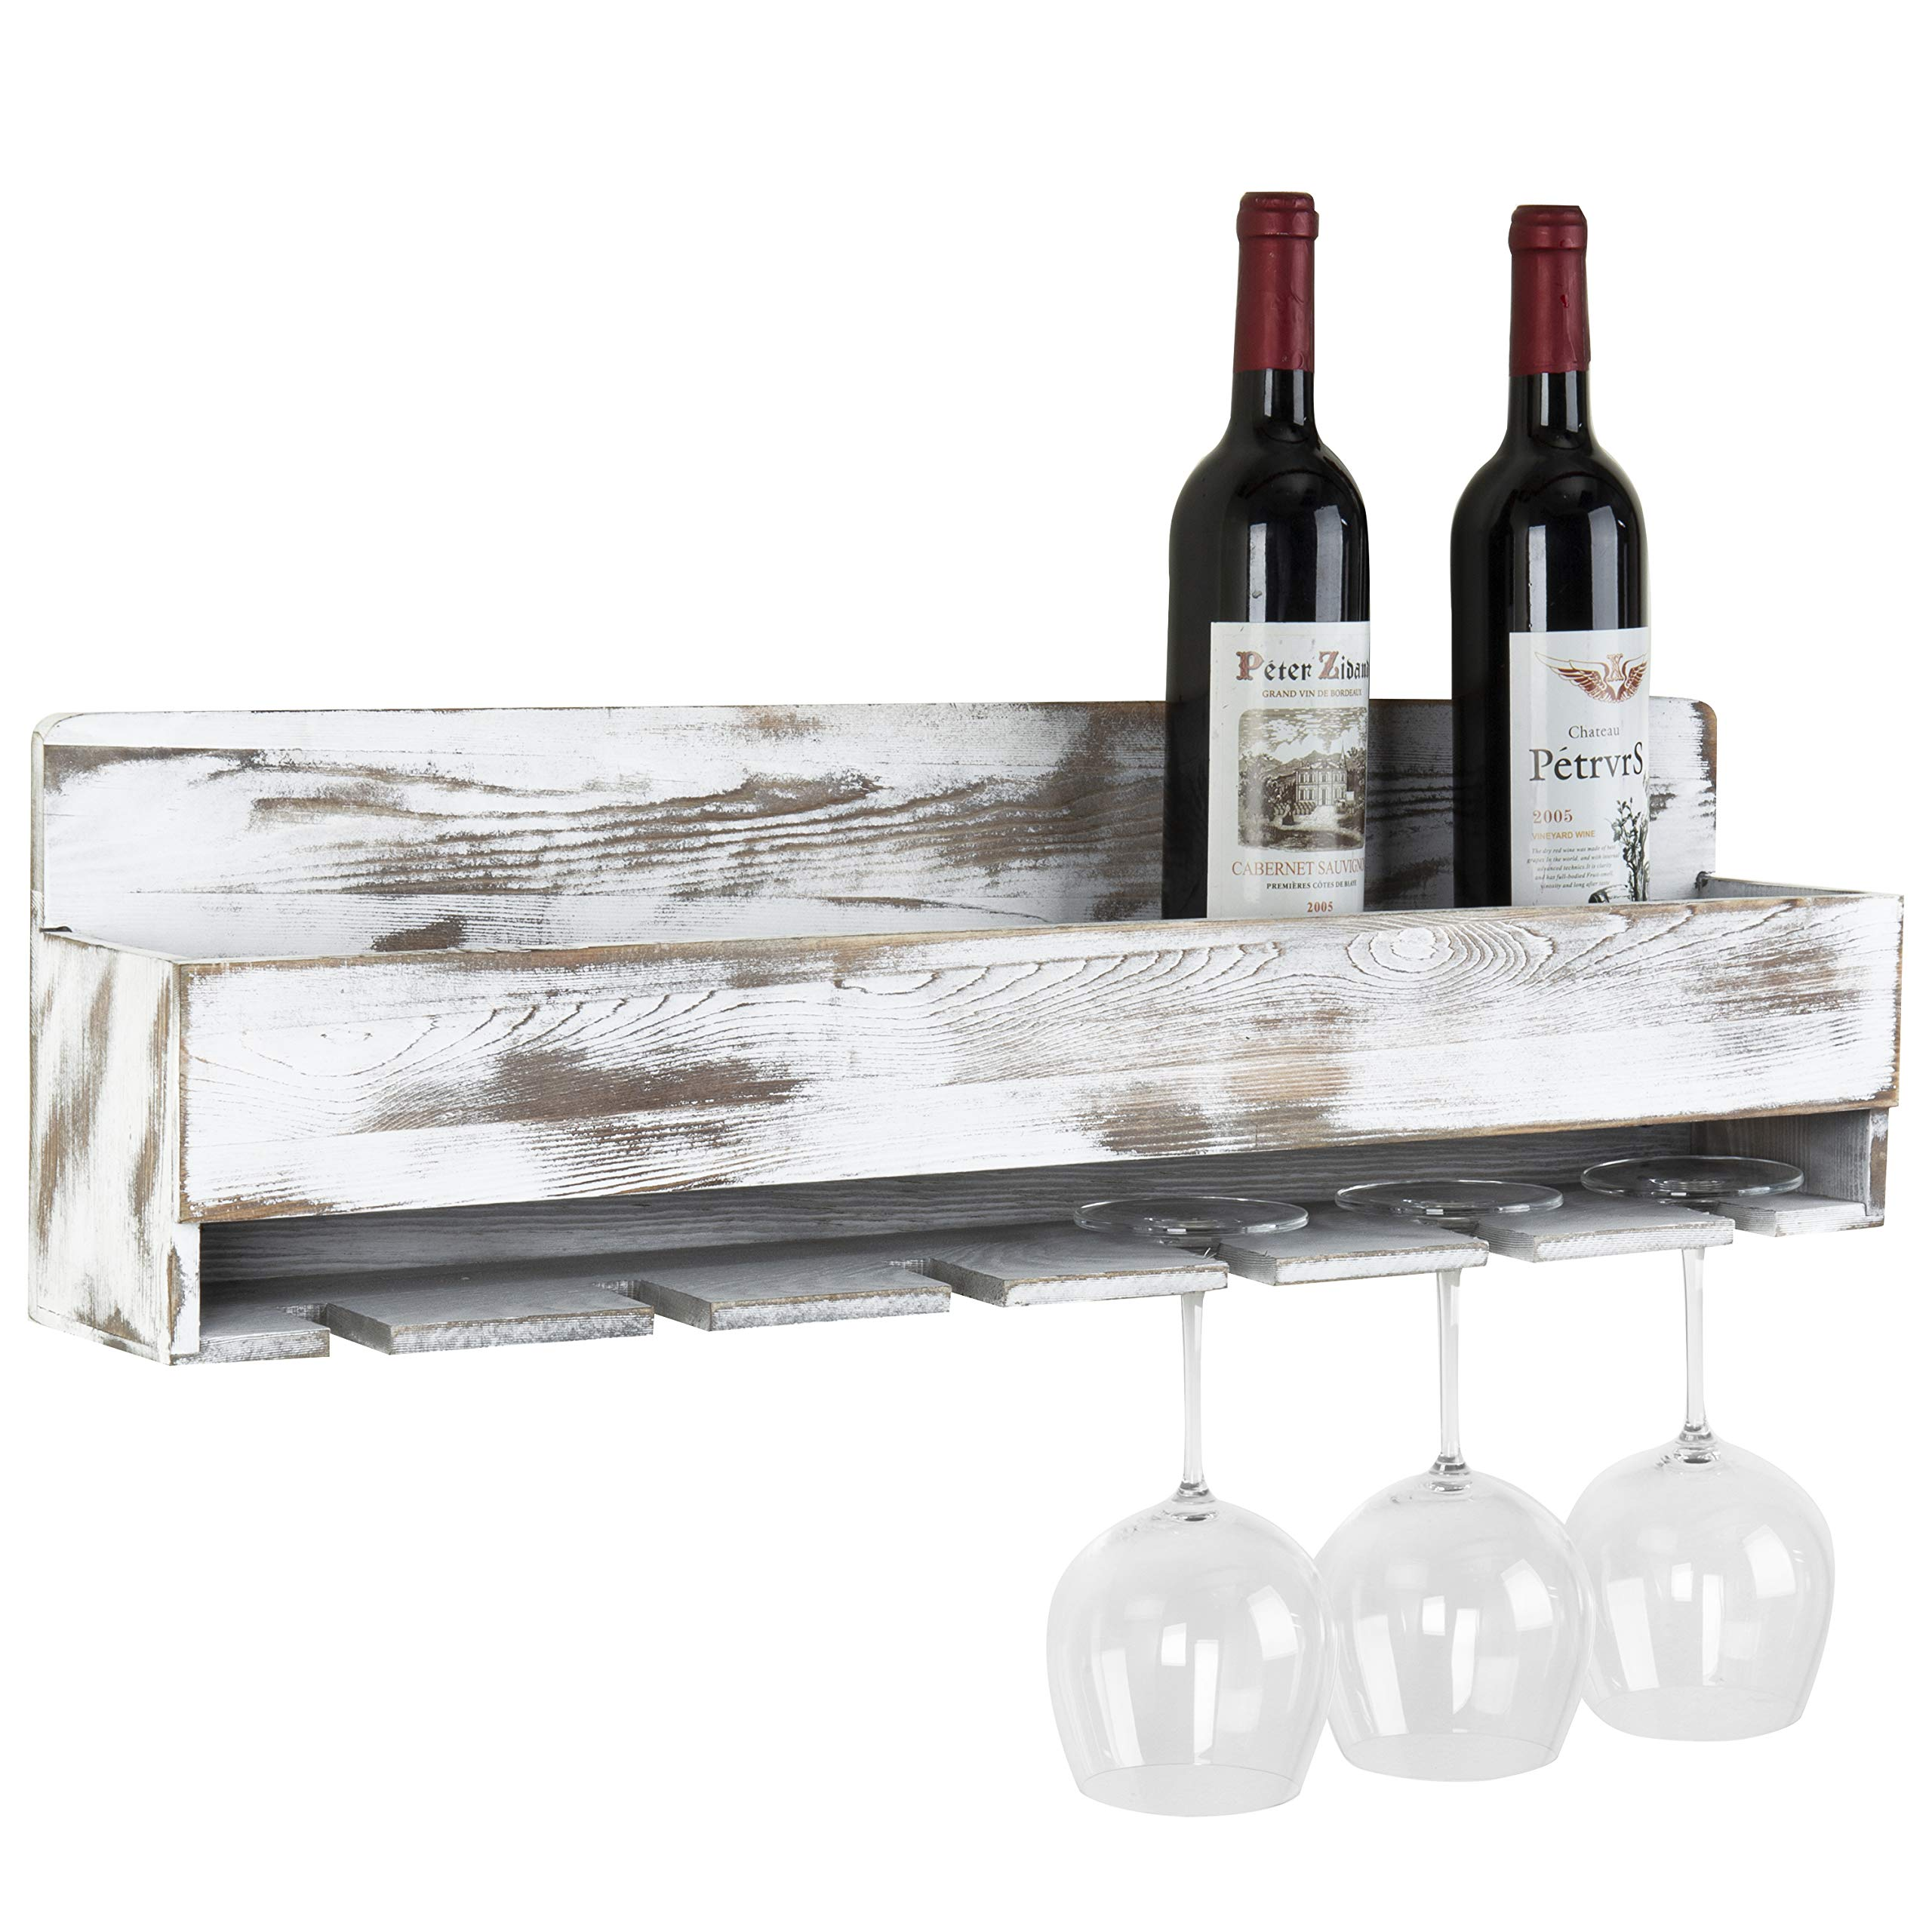 MyGift Rustic Whitewashed Wood Wall-Mounted Wine Rack with Bottle & Glass Holder by MyGift (Image #1)